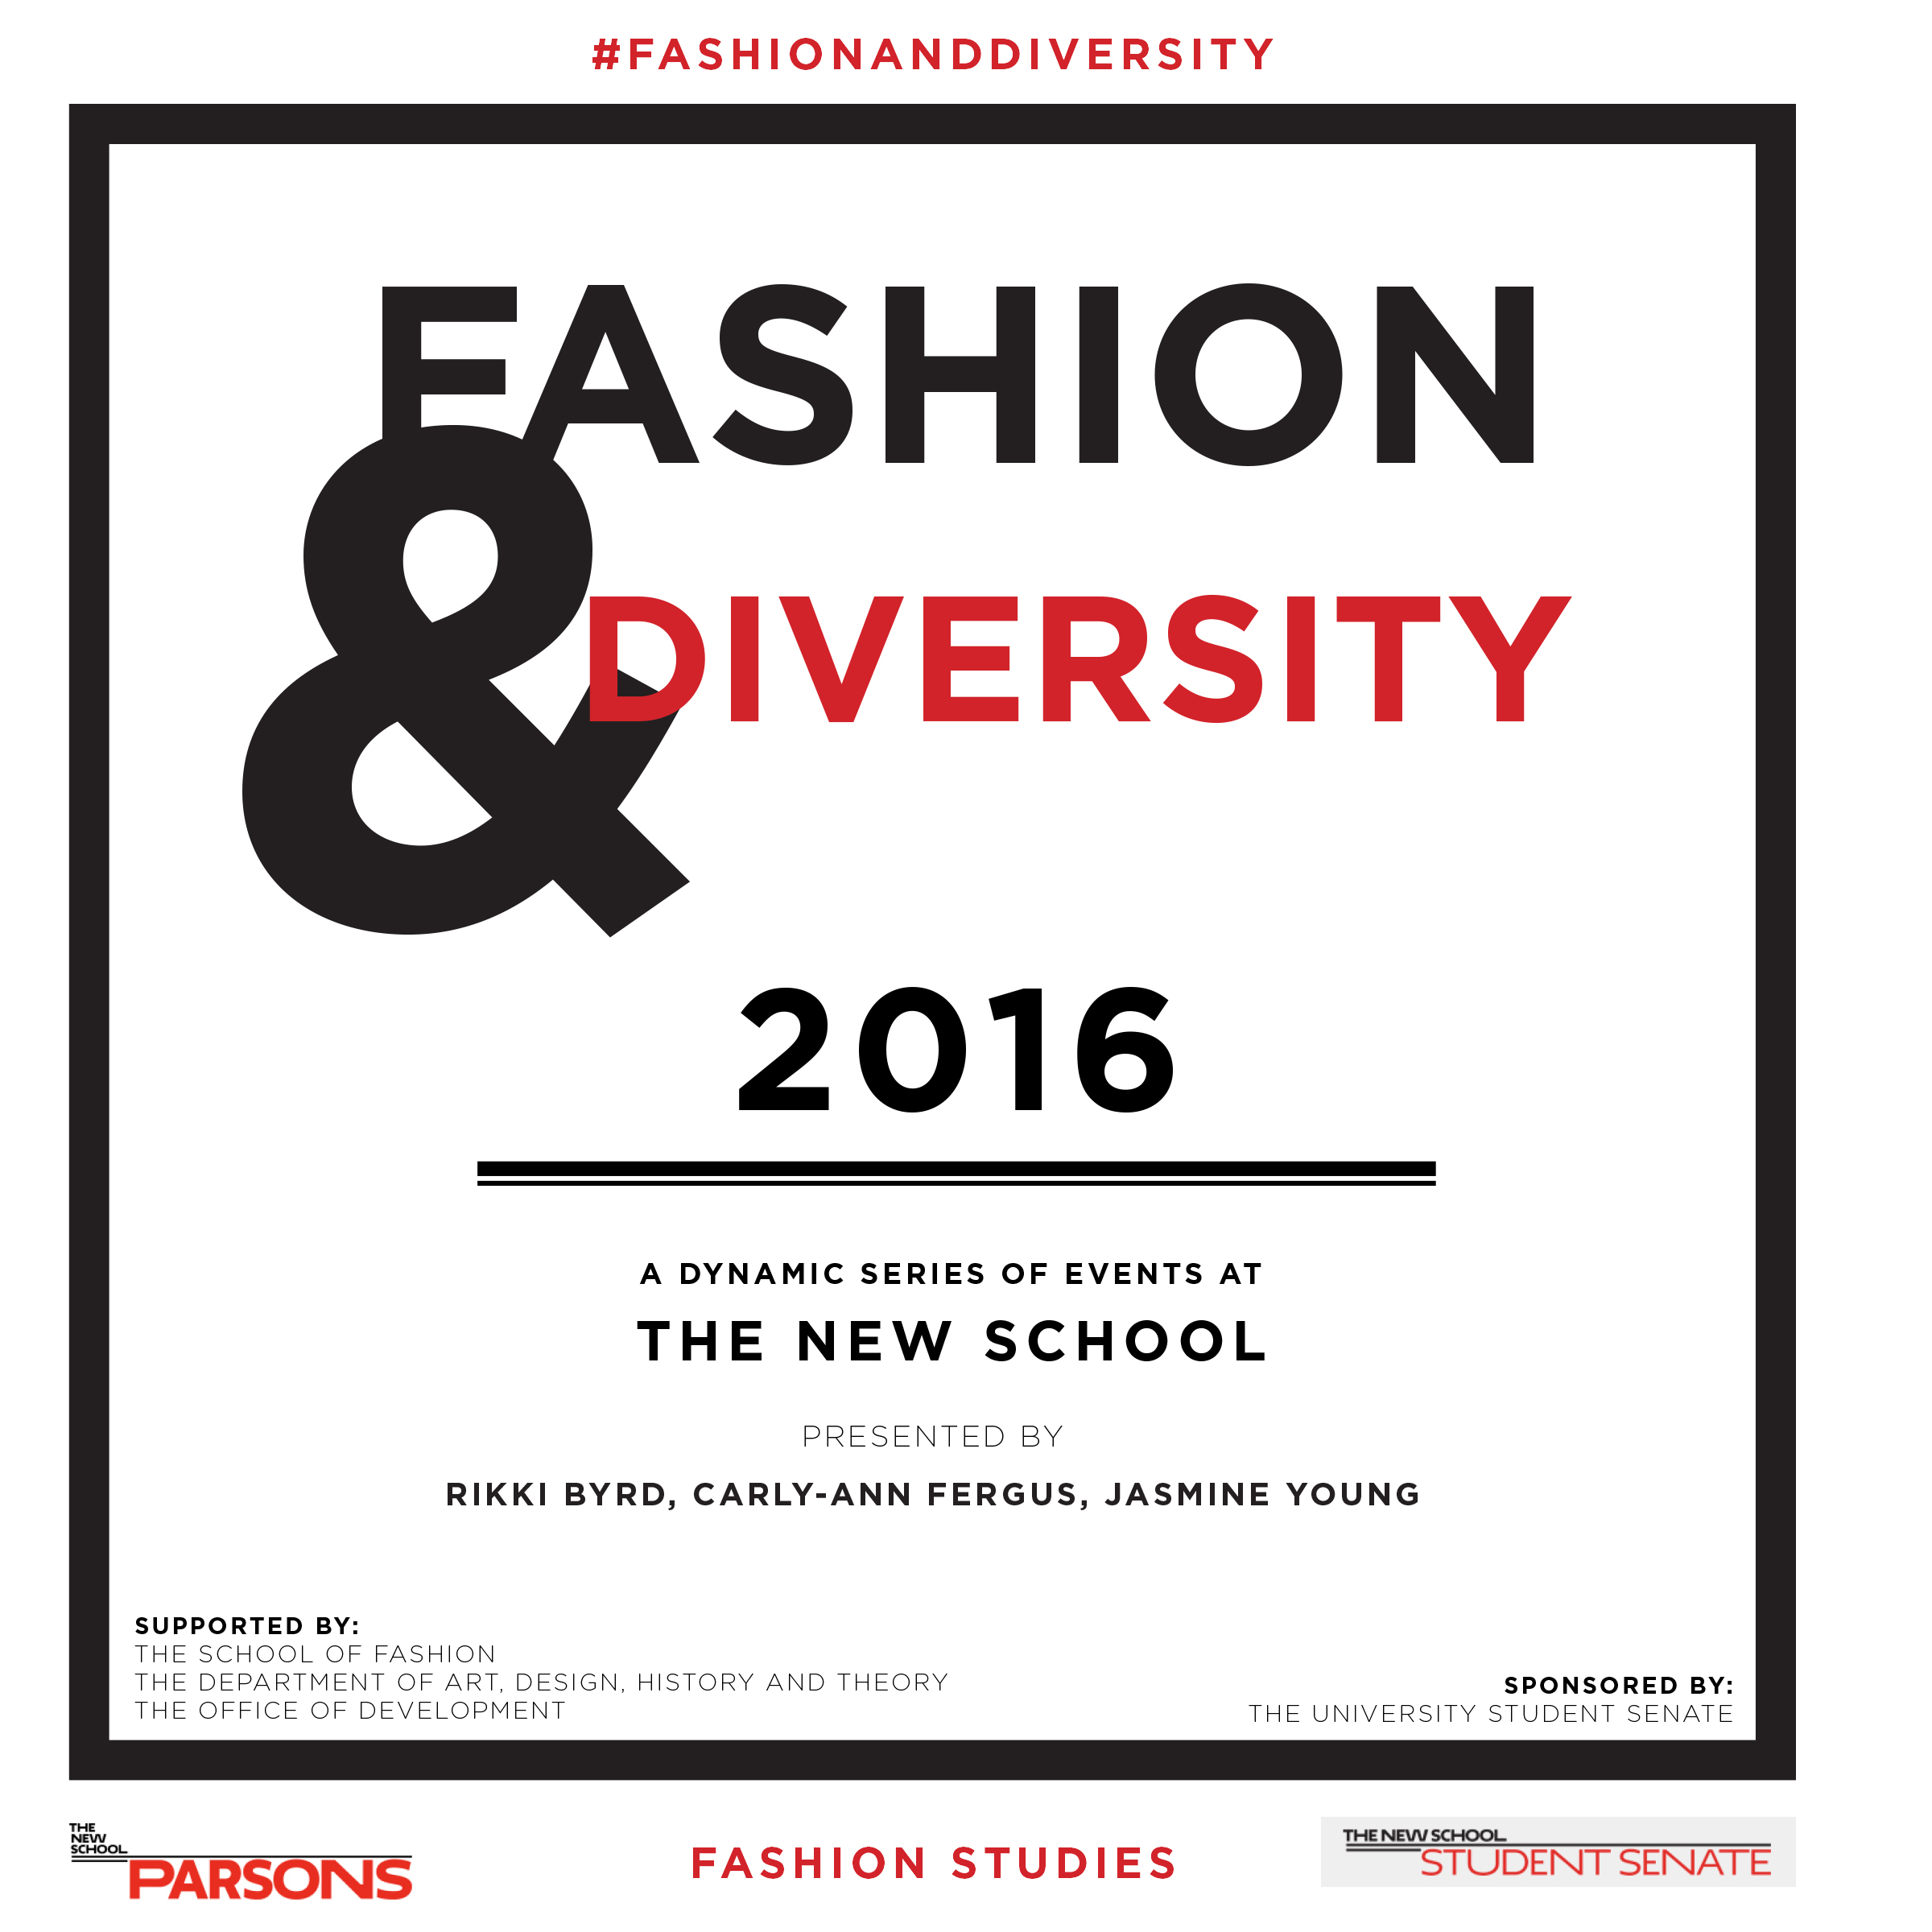 Fashion_&_Diversity_Social-Main